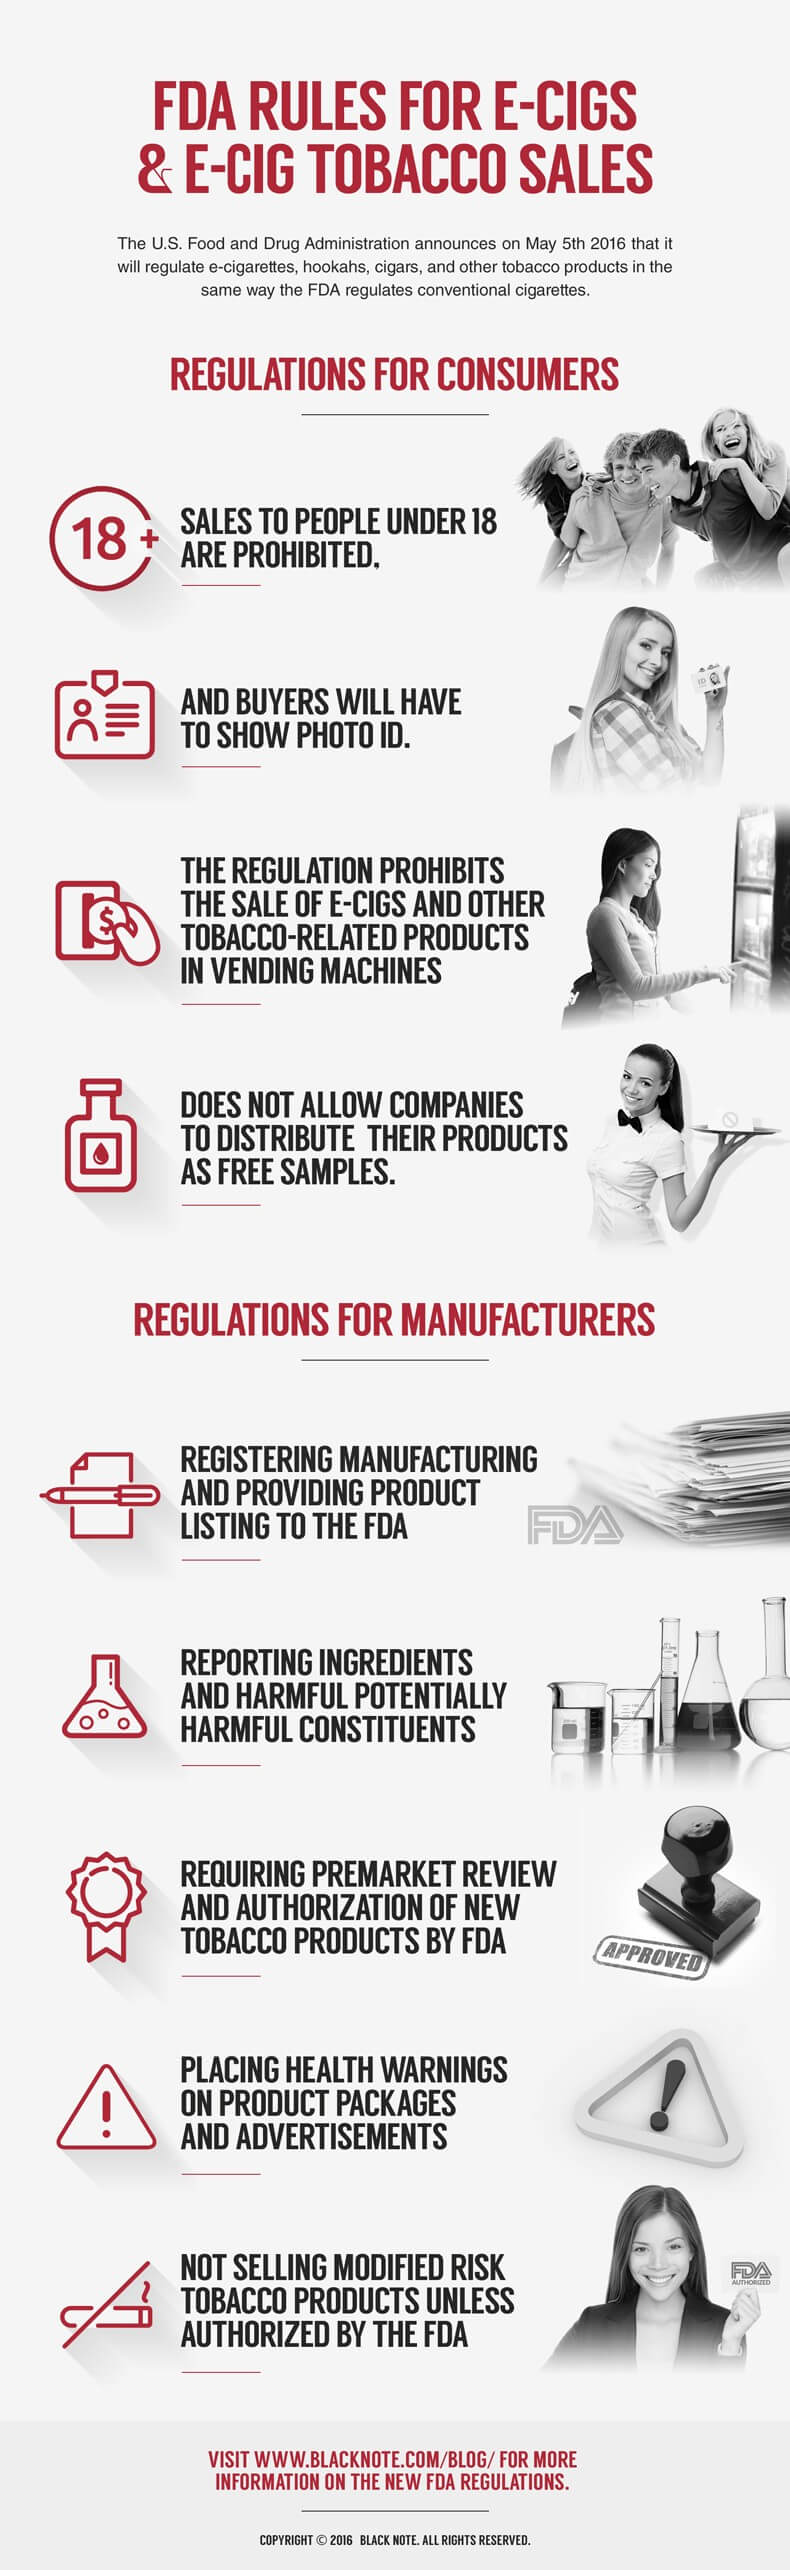 FDA Regulations on Ecigs and Tobacco Sales